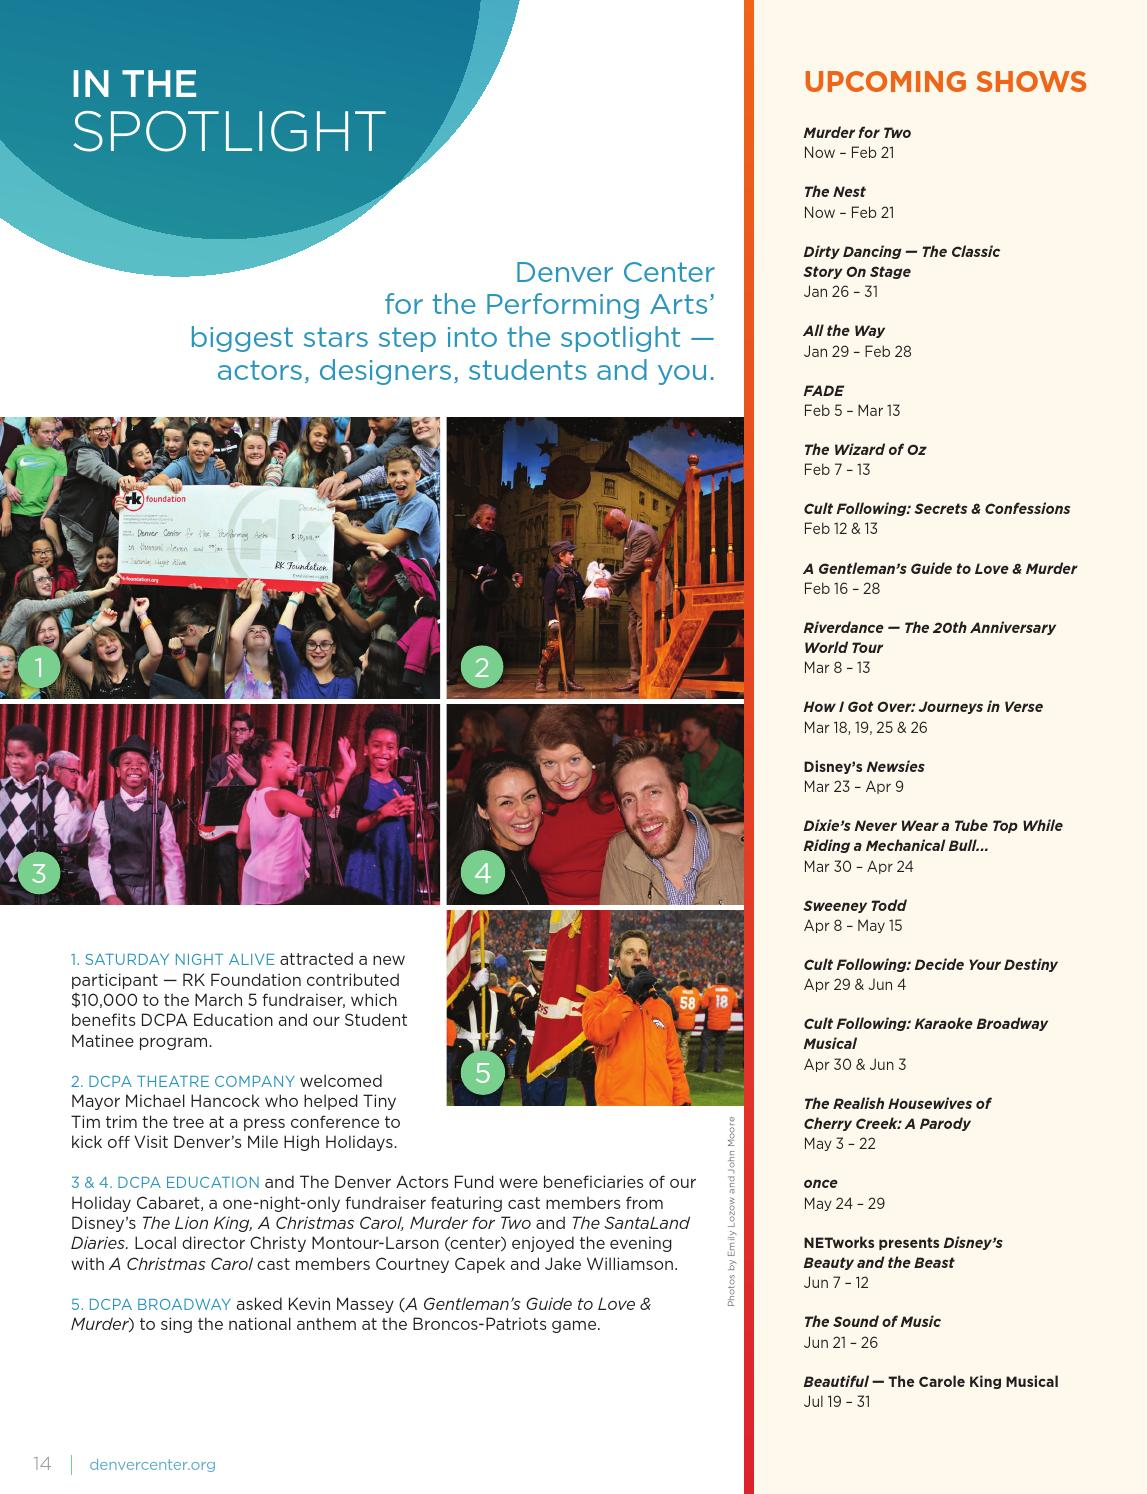 Applause Magazine, Feb  7-13, 2016 by The Publishing House